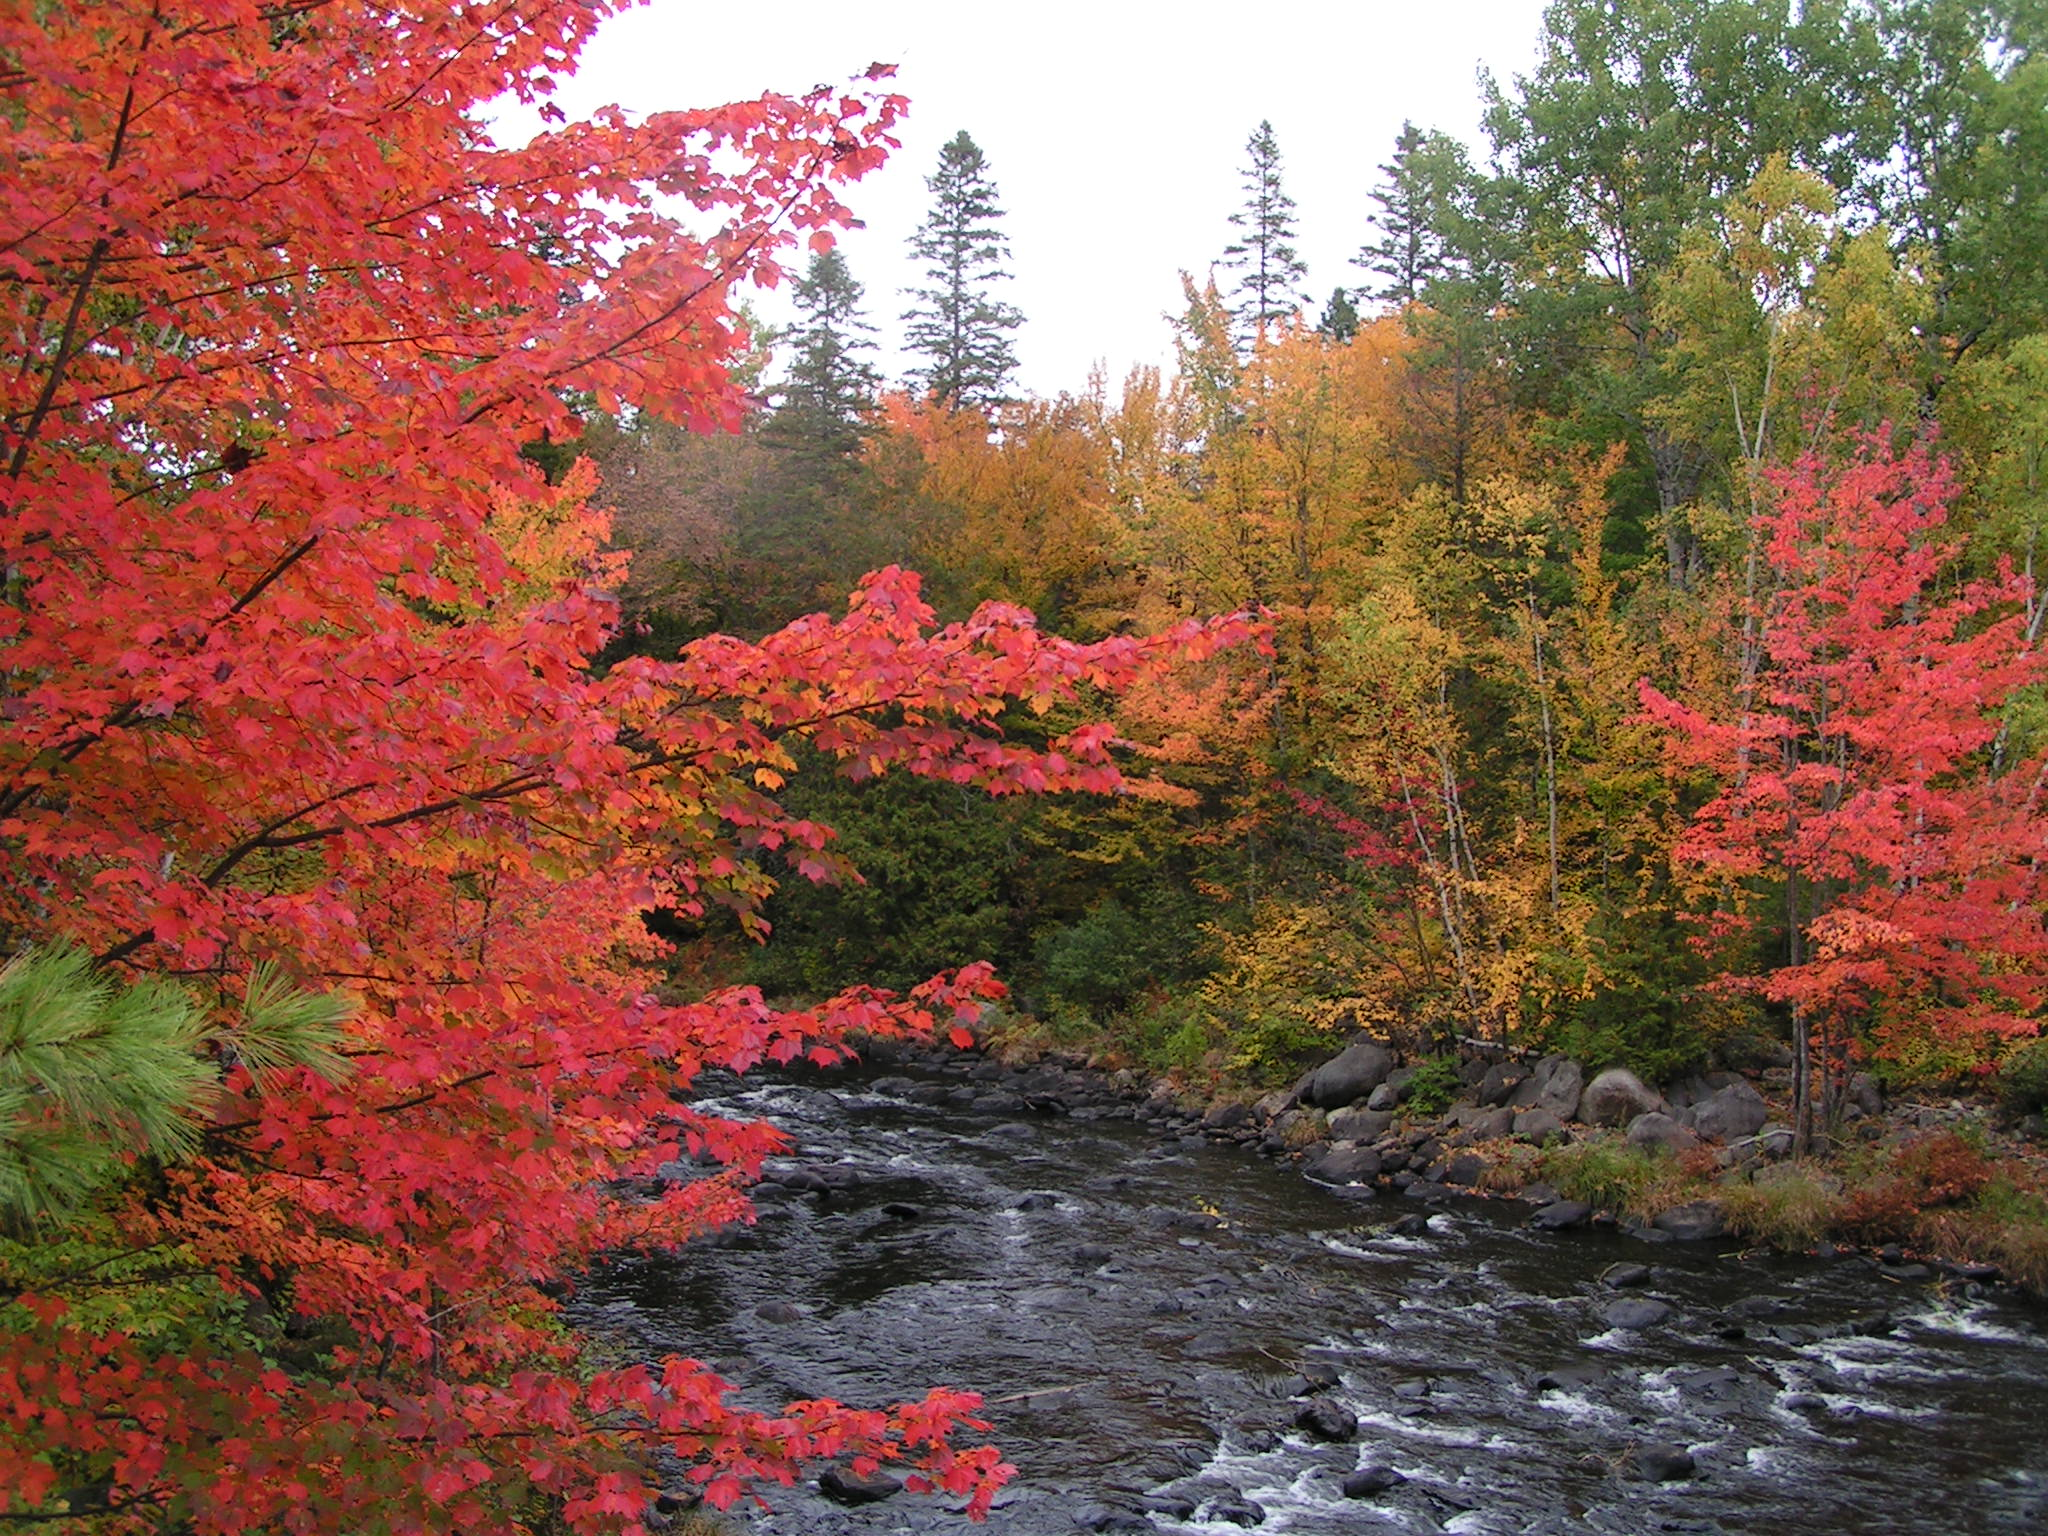 October Fall Wallpaper Mainefoliage Com Photo Gallery The Best Of The Years Past